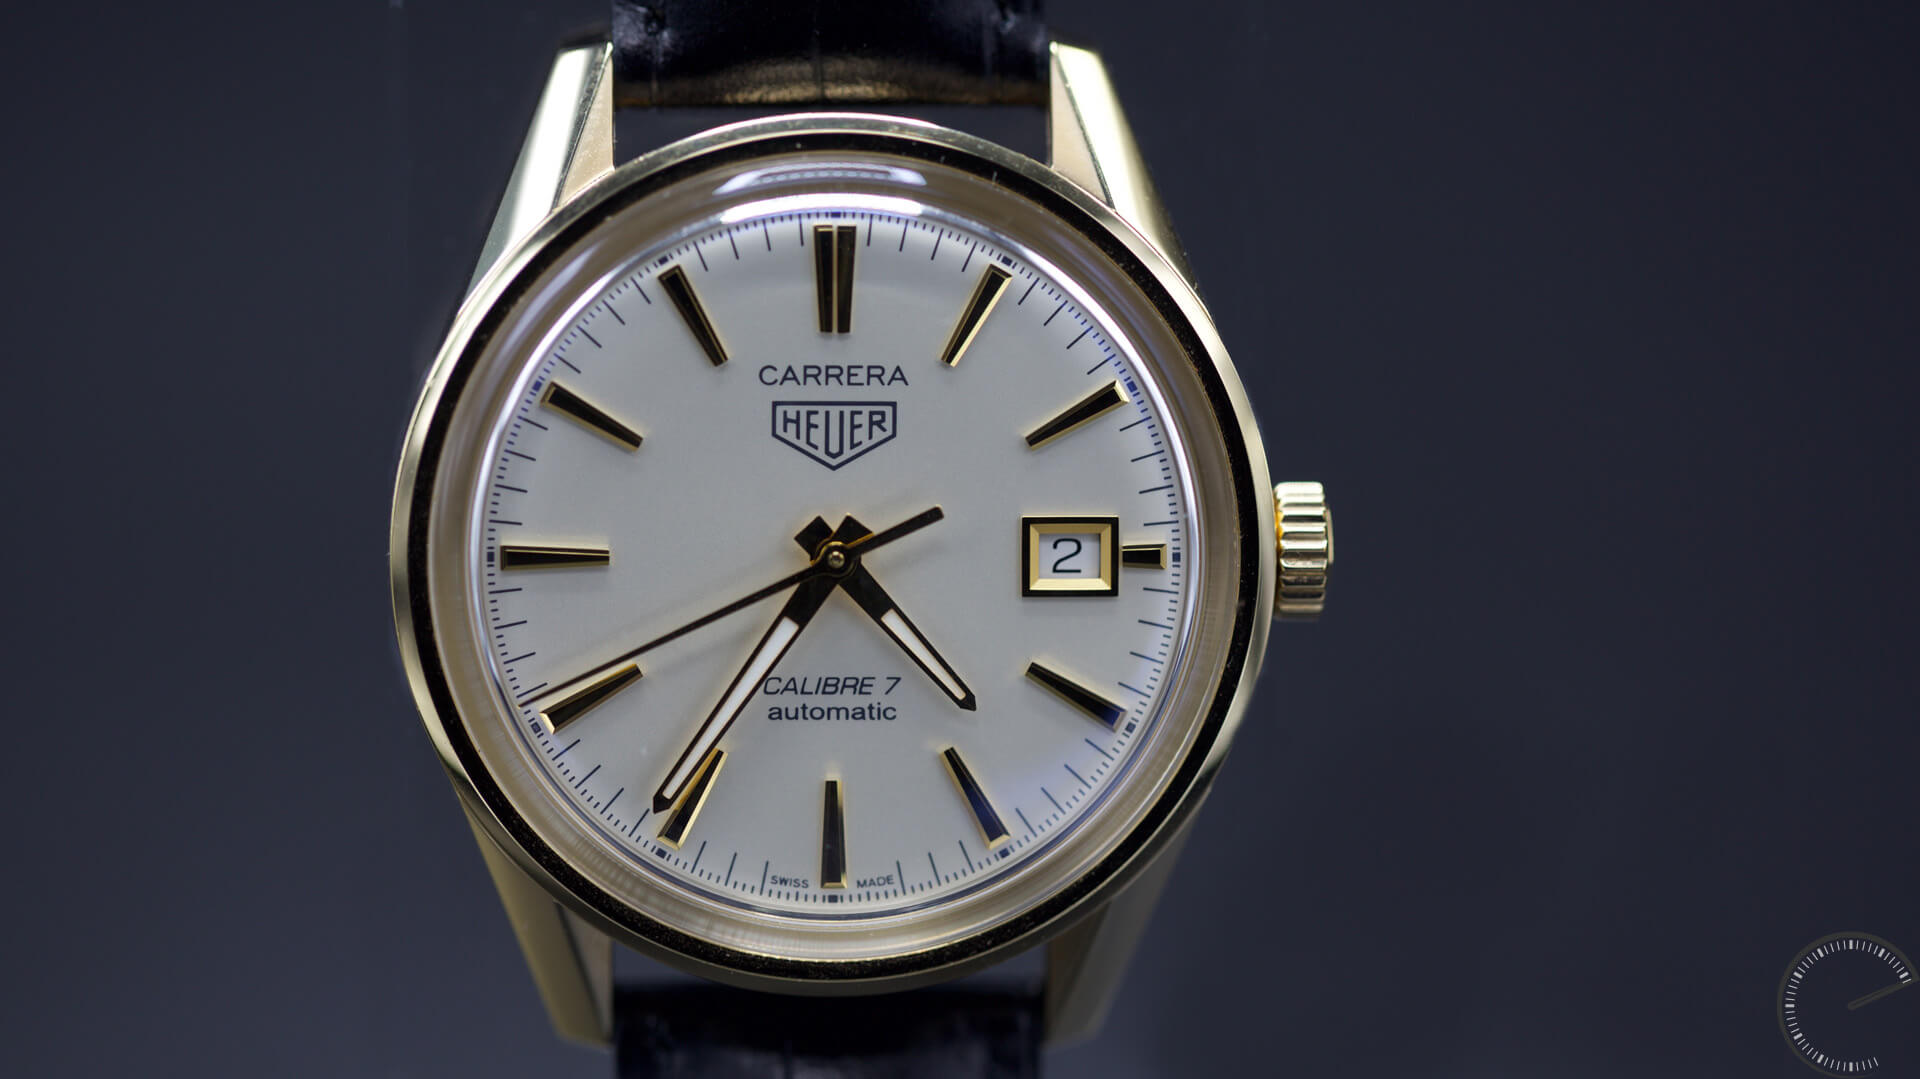 TAG_Heuer_CARRERA_100M_Calibre_7_Glassbox_39MM_dial1 - ESCAPEMENT MAGAZINE - watch reviews by Angus Davies